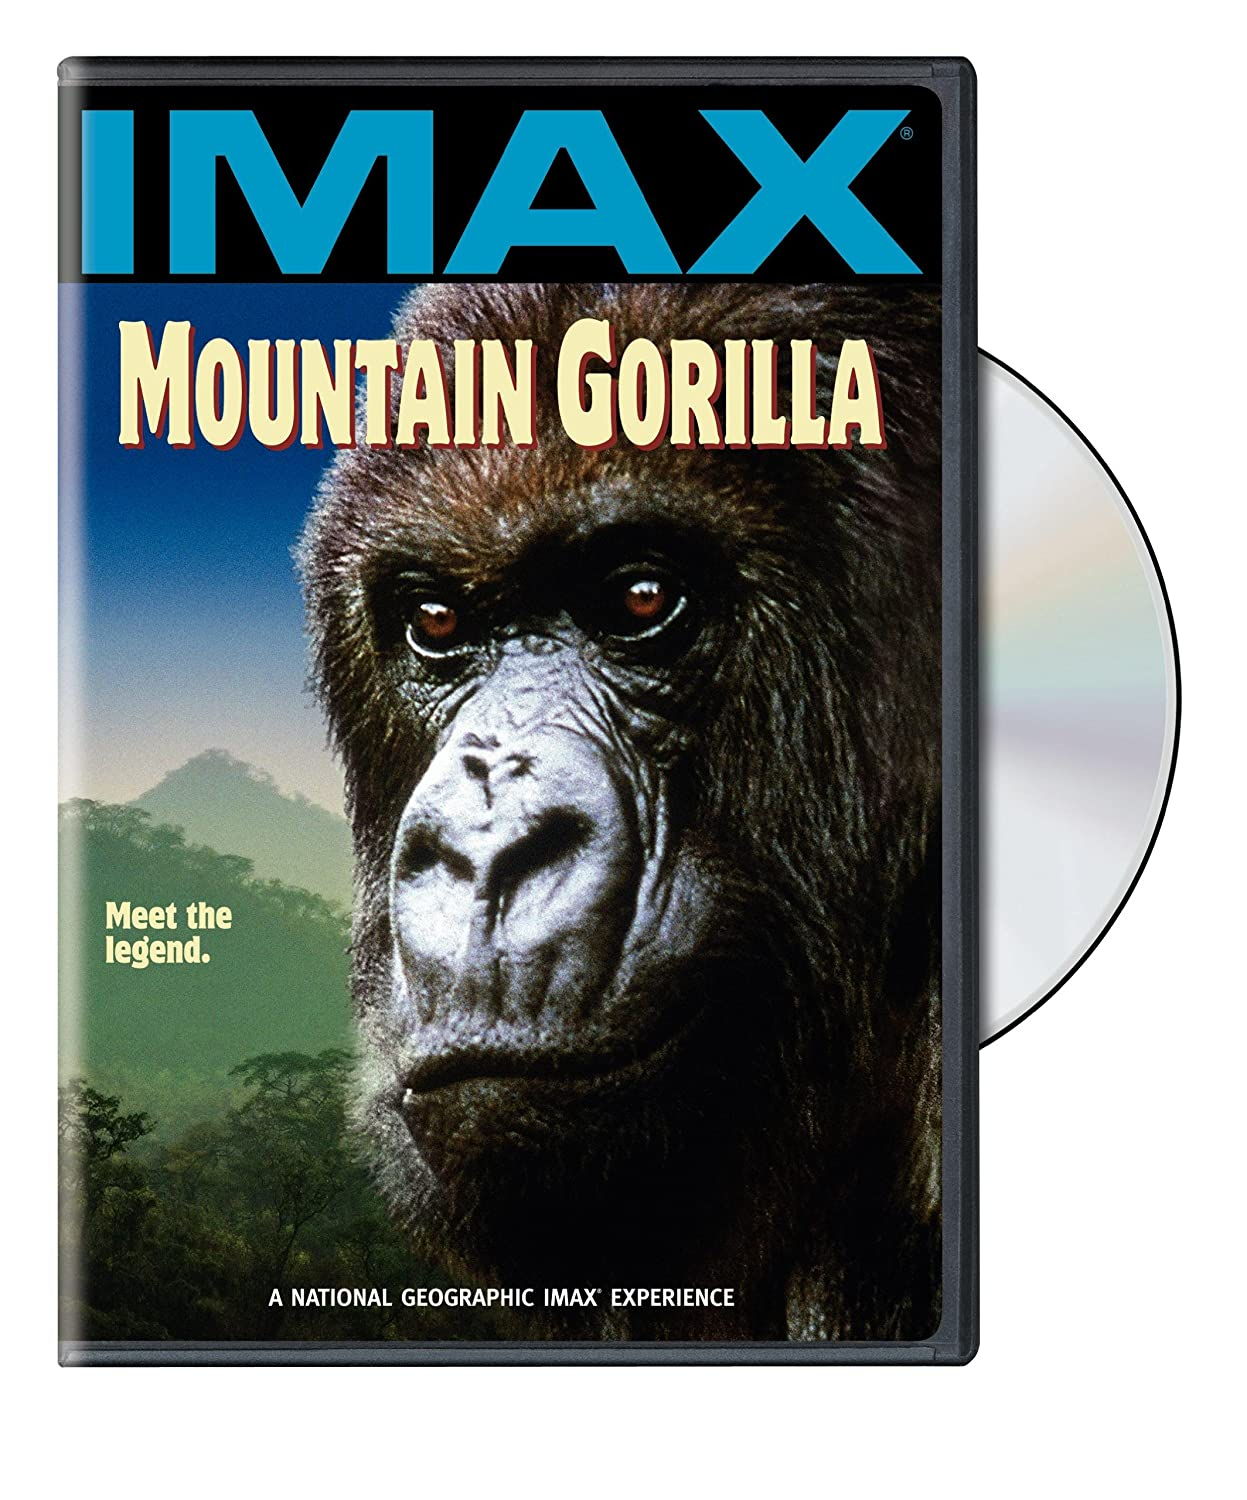 Mountain Gorilla [IMAX] Adrian Warren Steve Lucas IMAX / Warner Home Video 794051800527